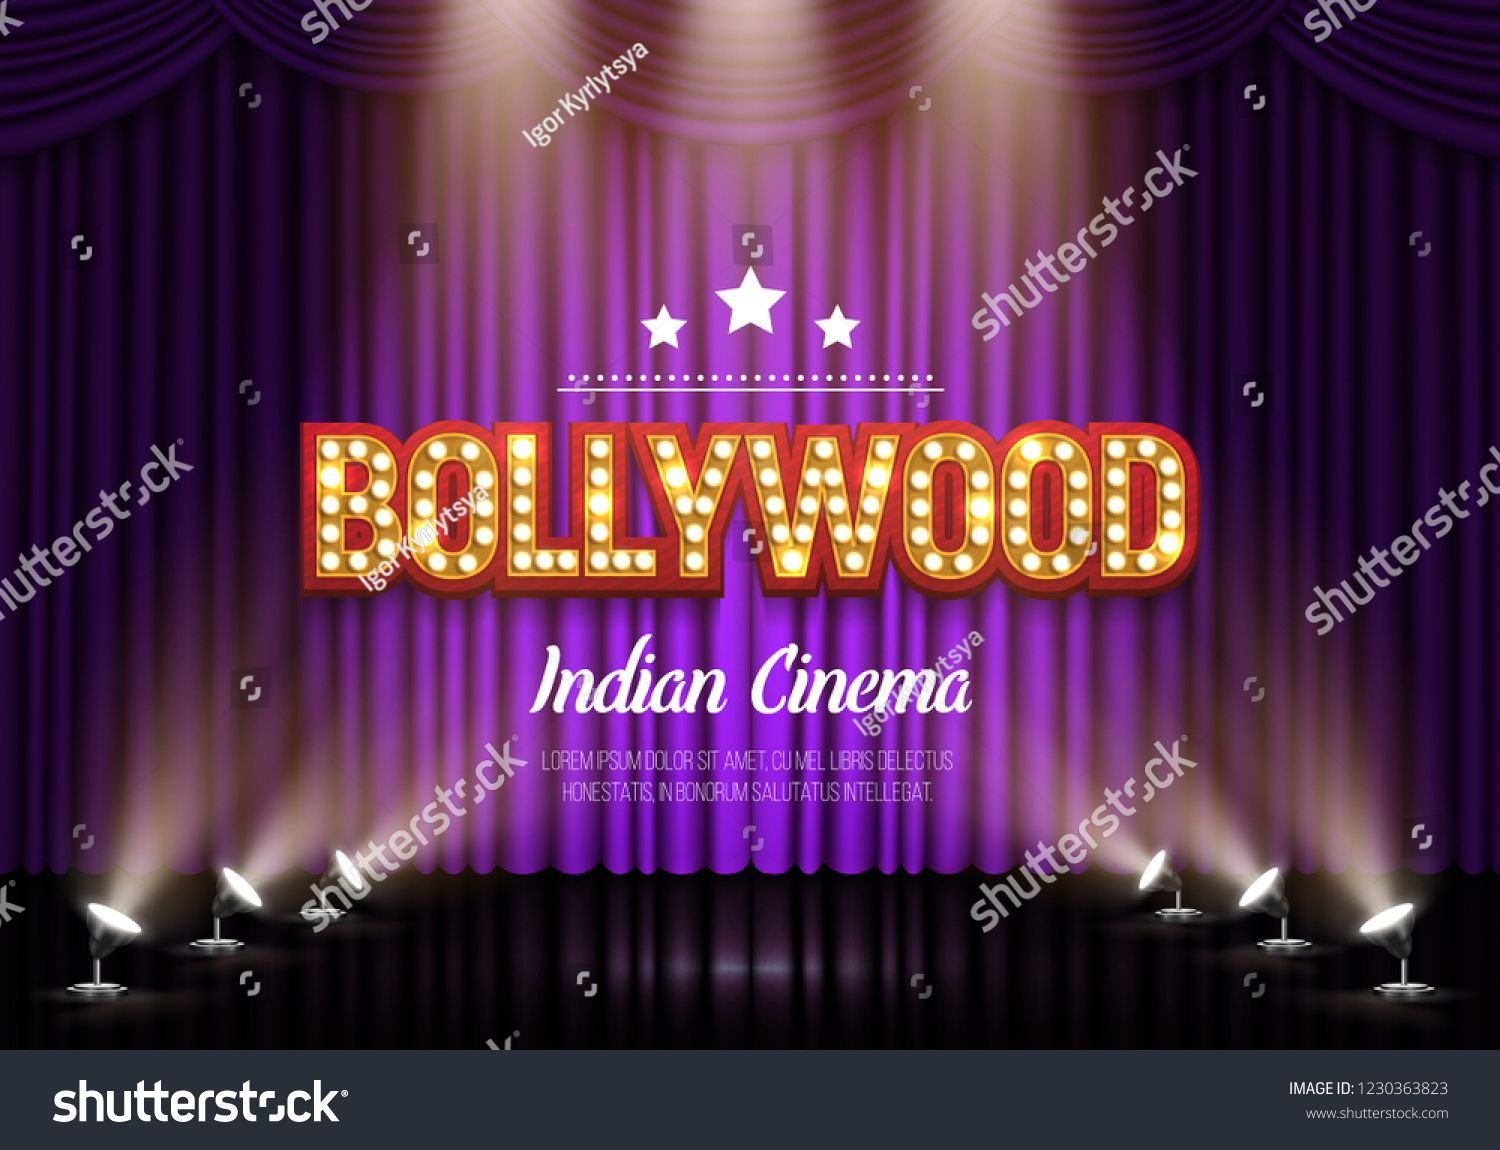 Bollywood indian cinema movie banner or poster with